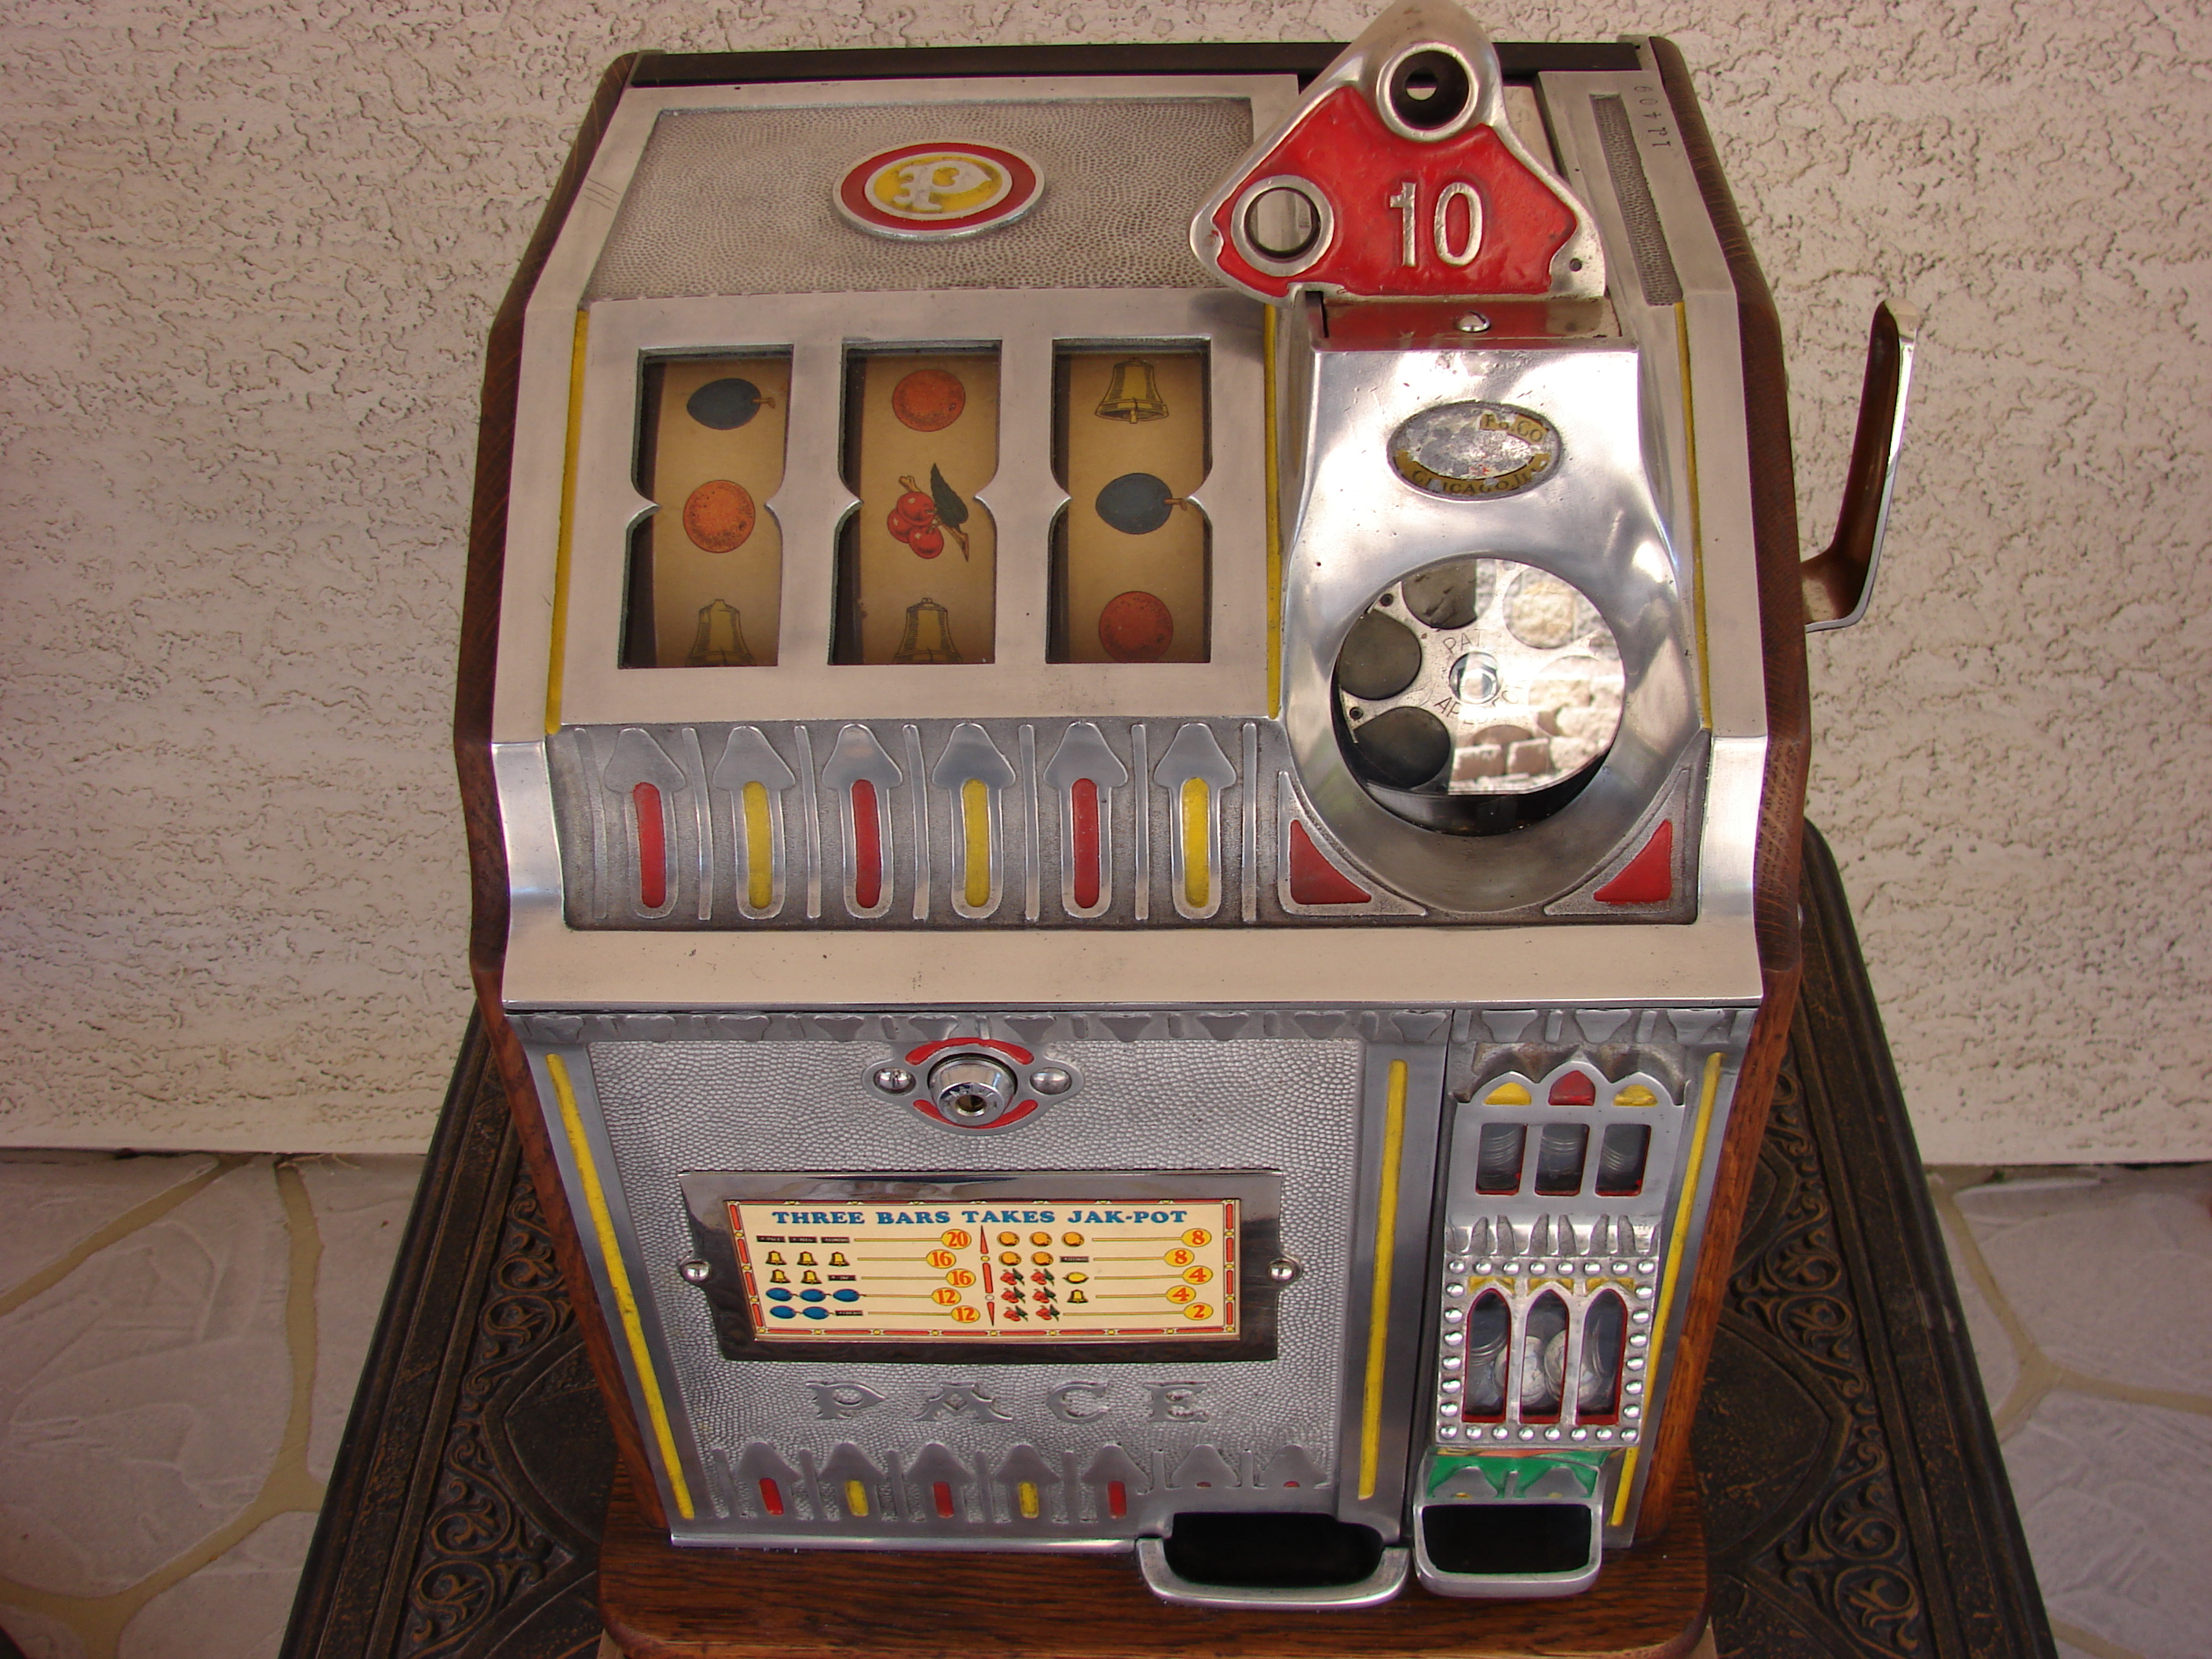 PACE BANTAM SLOT MACHINE 001.JPG